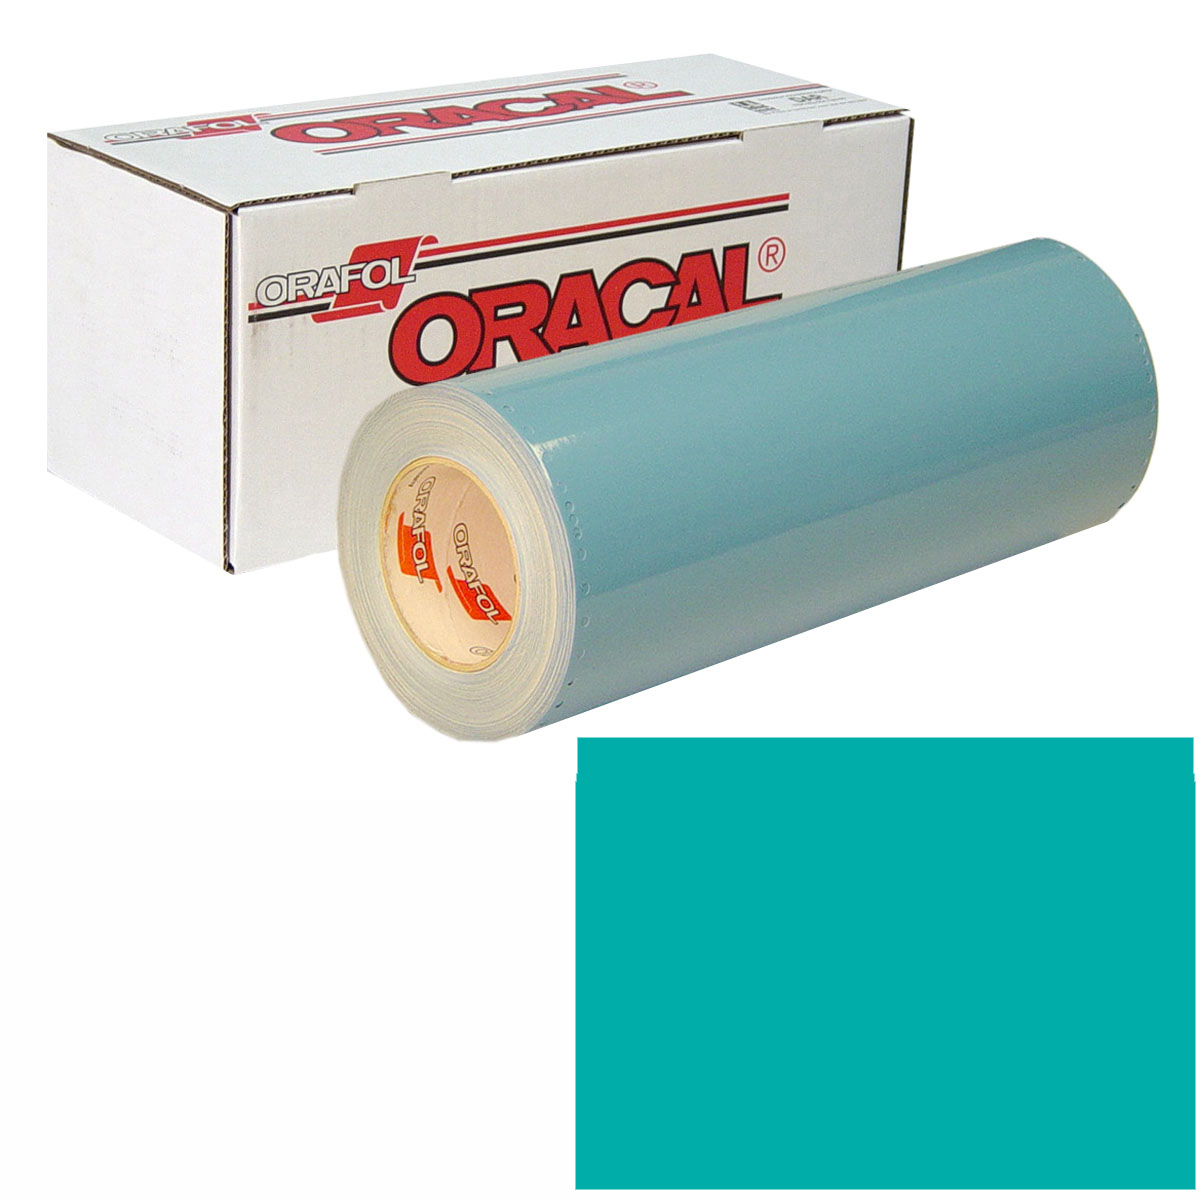 ORACAL 751 30in X 50yd 054 Turquoise